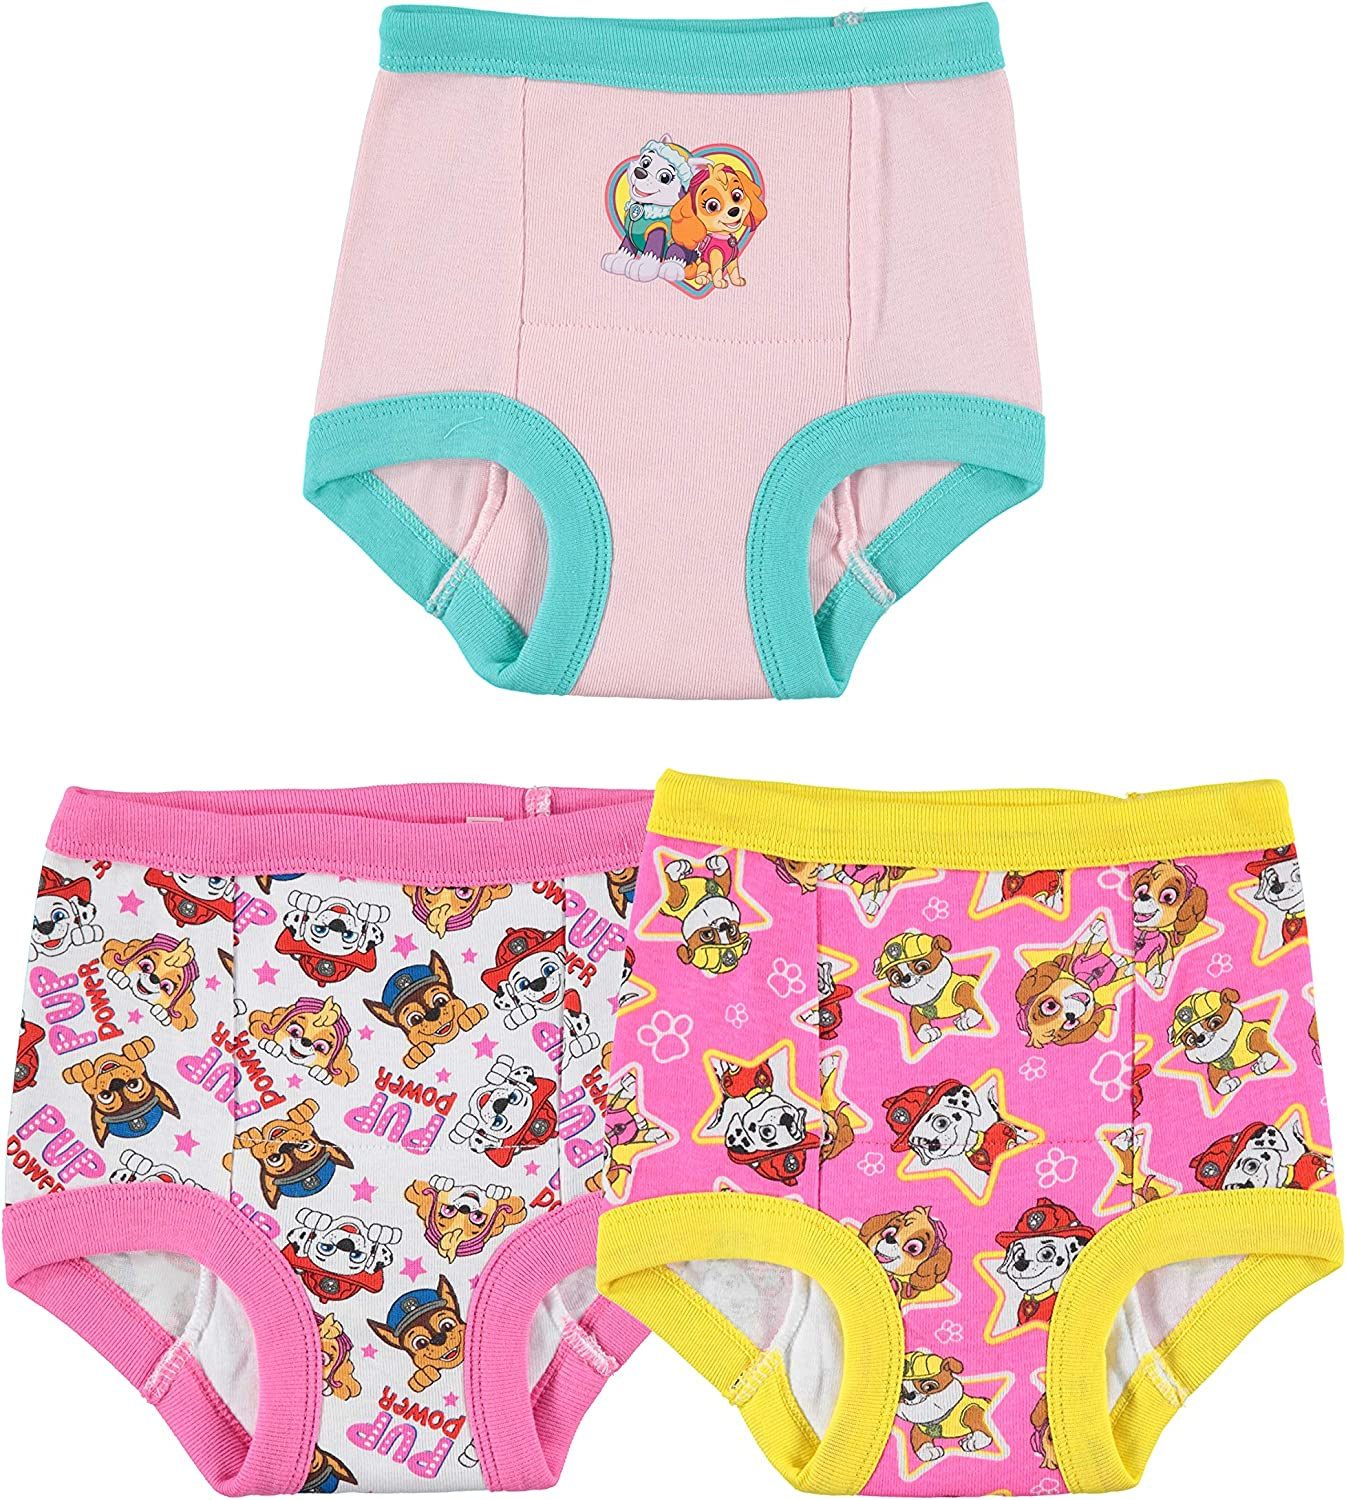 Nickelodeon Toddler Girls Paw Patrol Training Pants